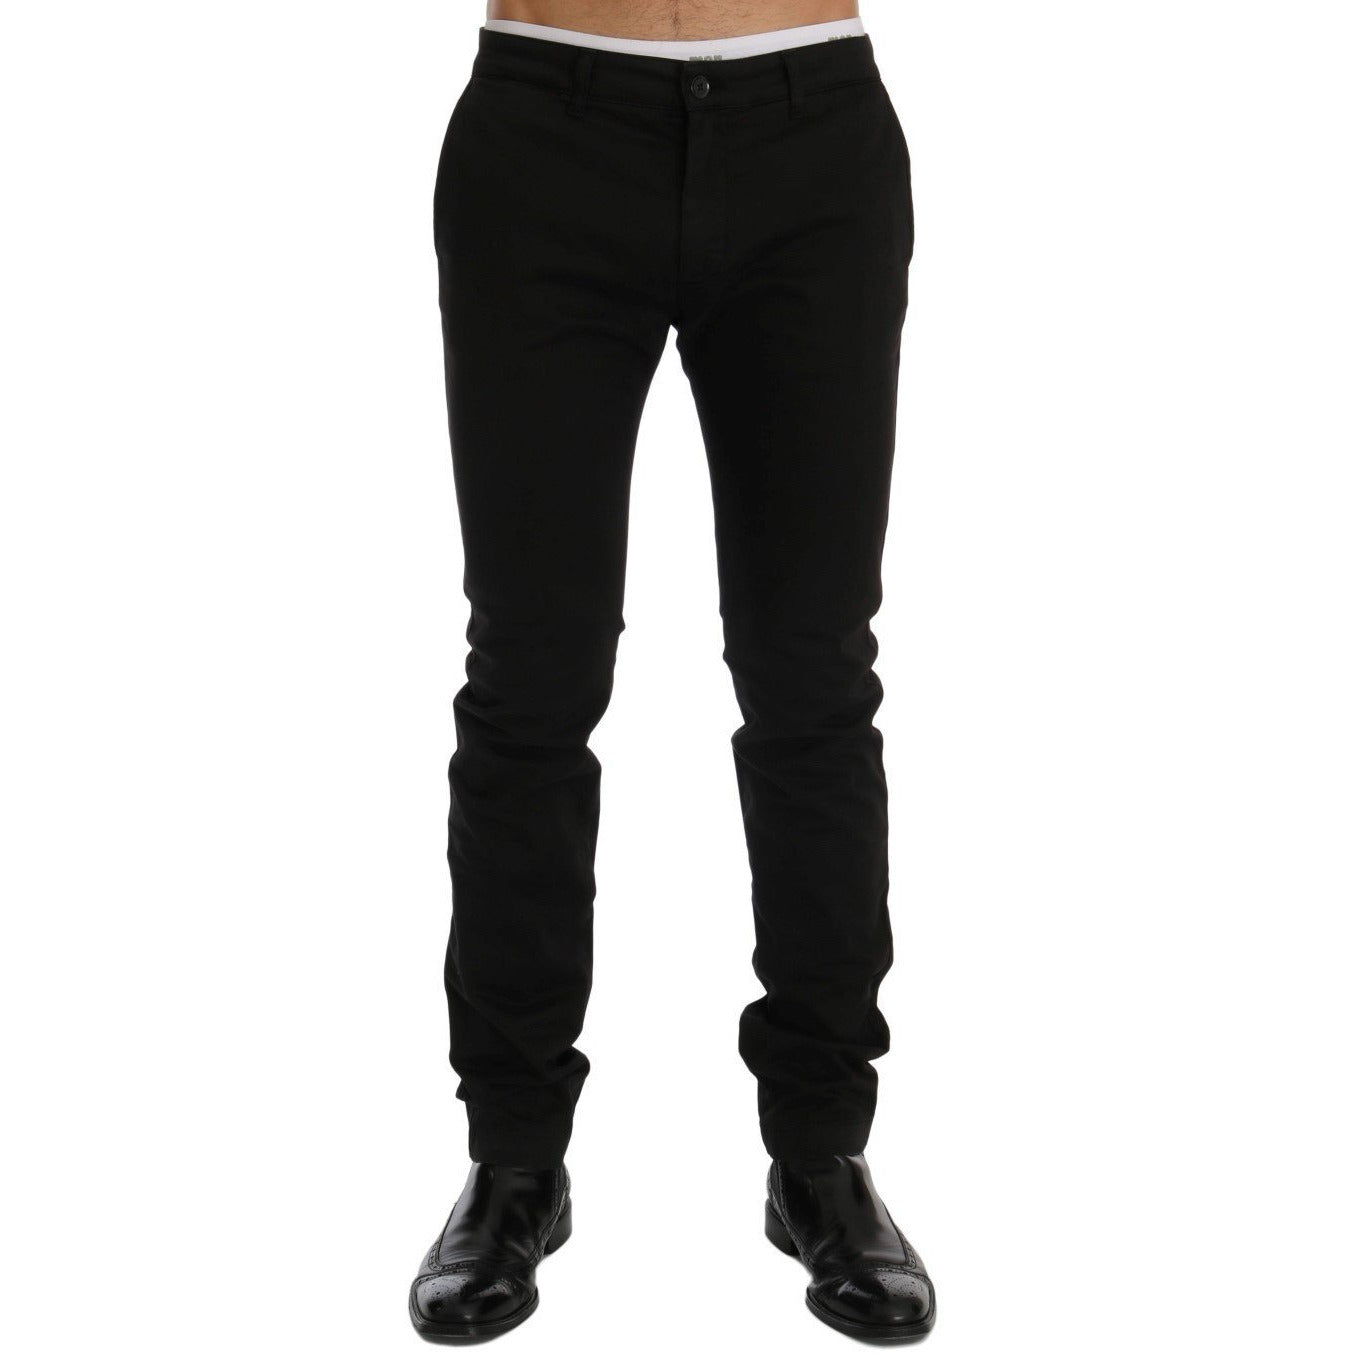 Black Cotton Stretch Chinos Pants GF Ferre